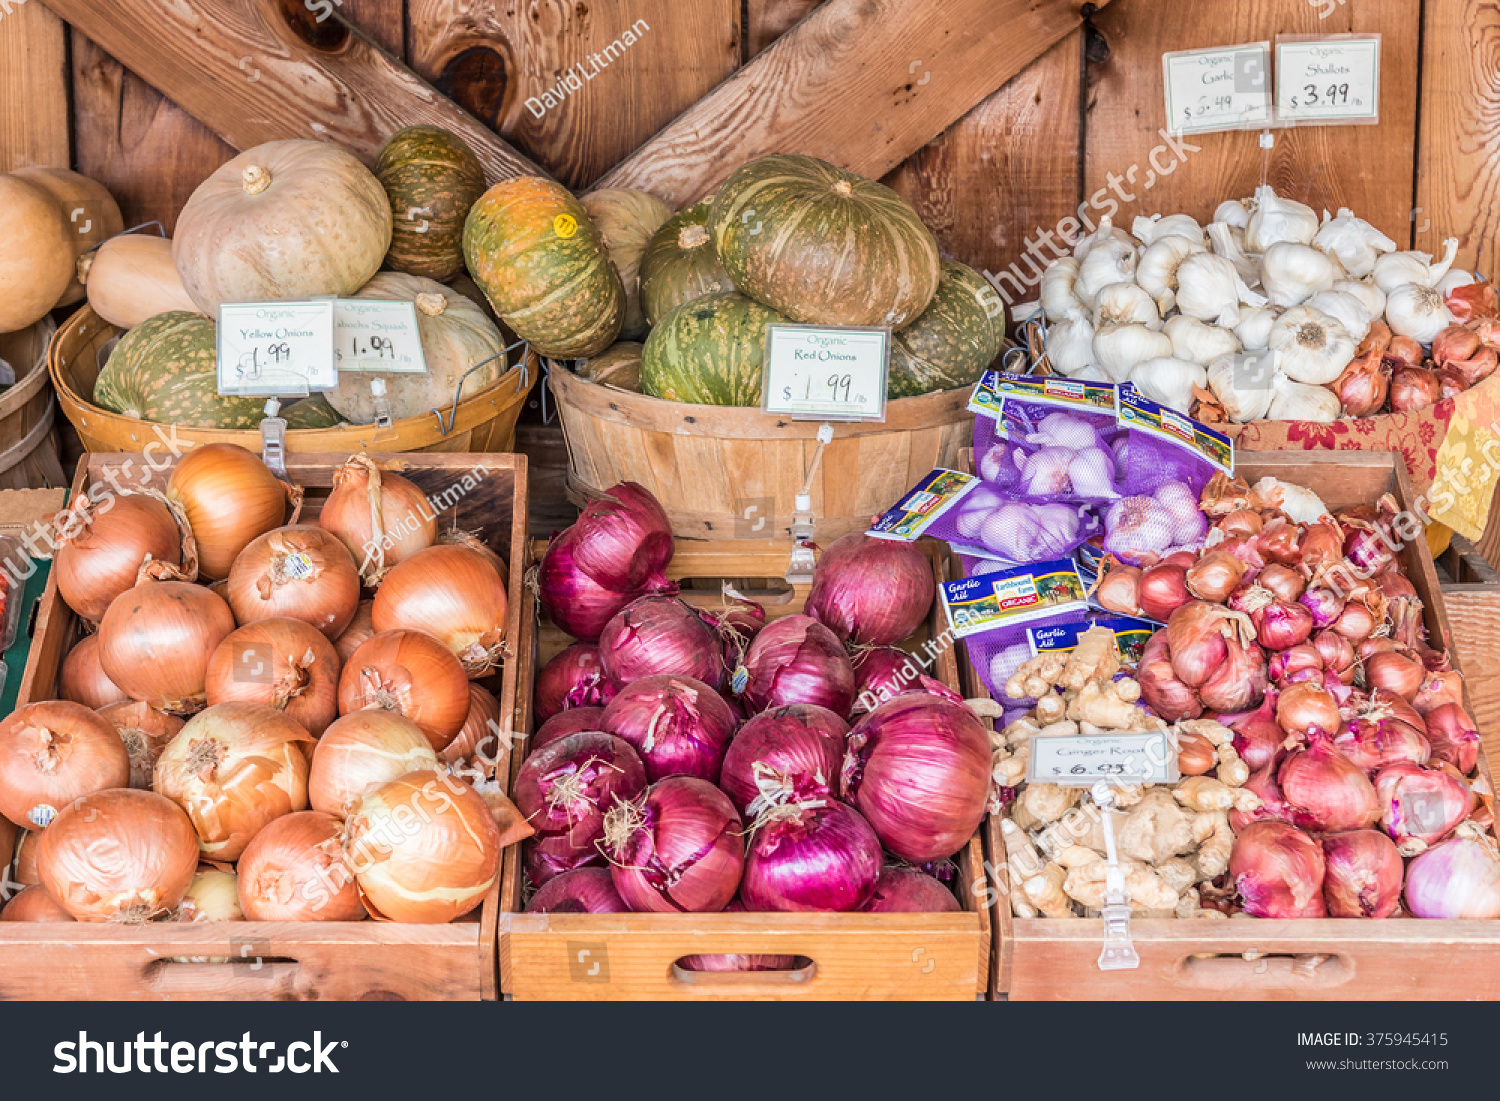 Carmel Valley, California, USA - February 11, 2016: Organic onions, garlic and squash is on display at the outdoor farmer's market of Earthbound Farms.